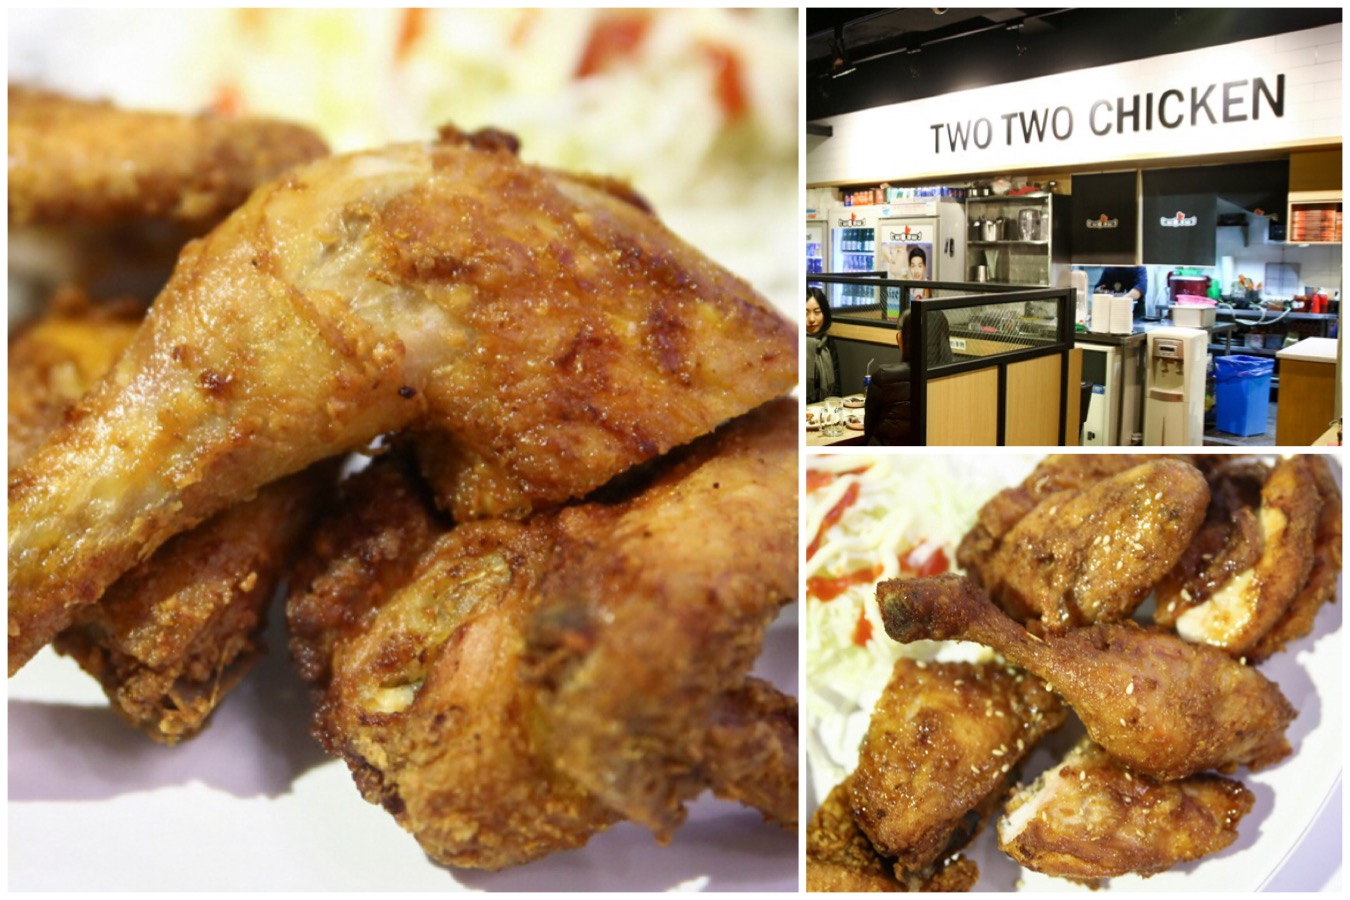 Two Two Chicken 둘둘치킨